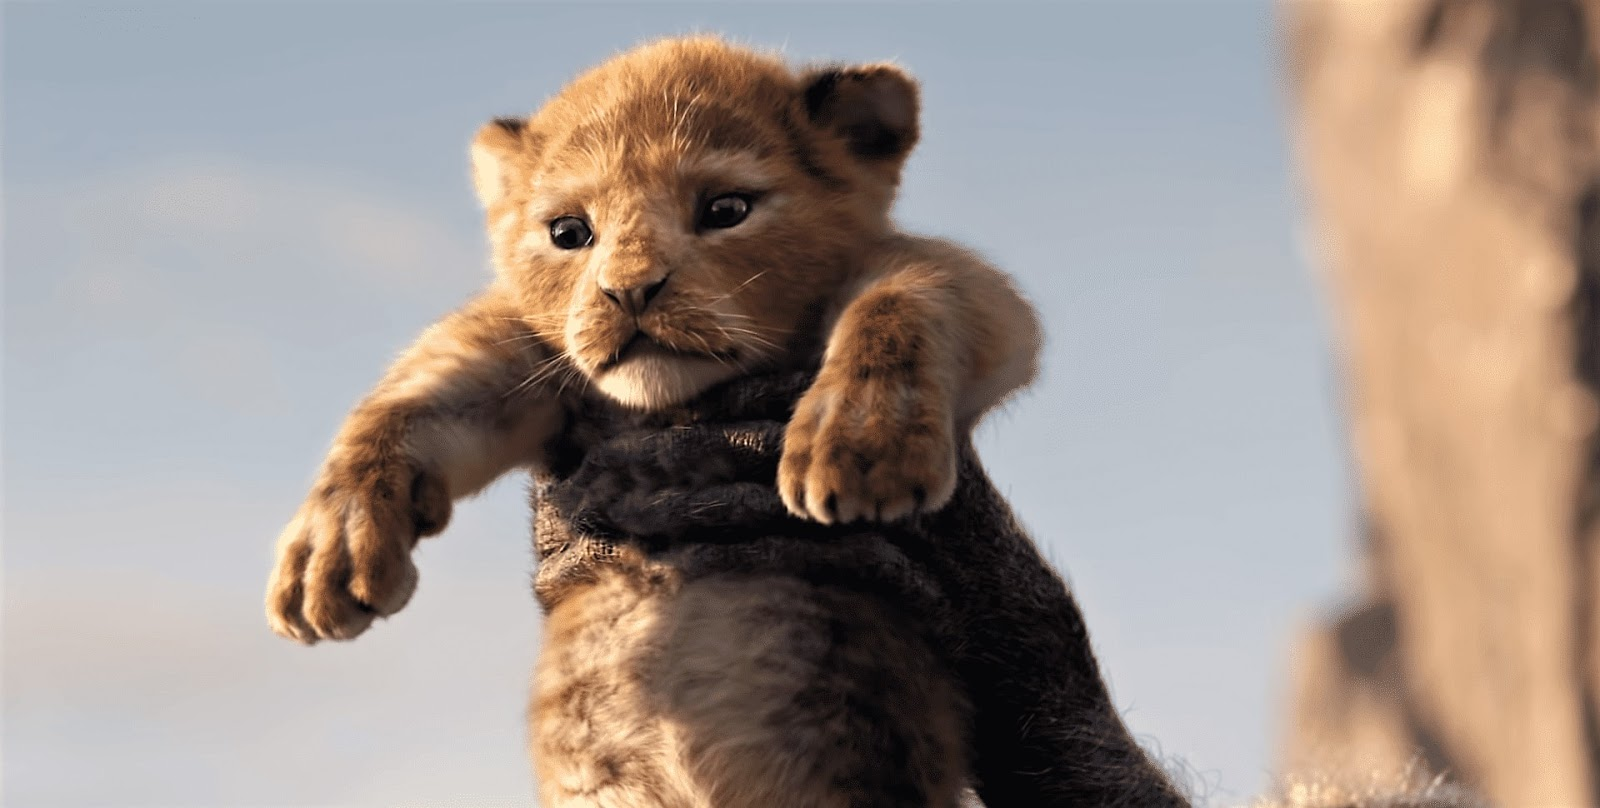 Upcoming Animated Movie 'The Lion King' (2019) First Teaser Trailer is Released